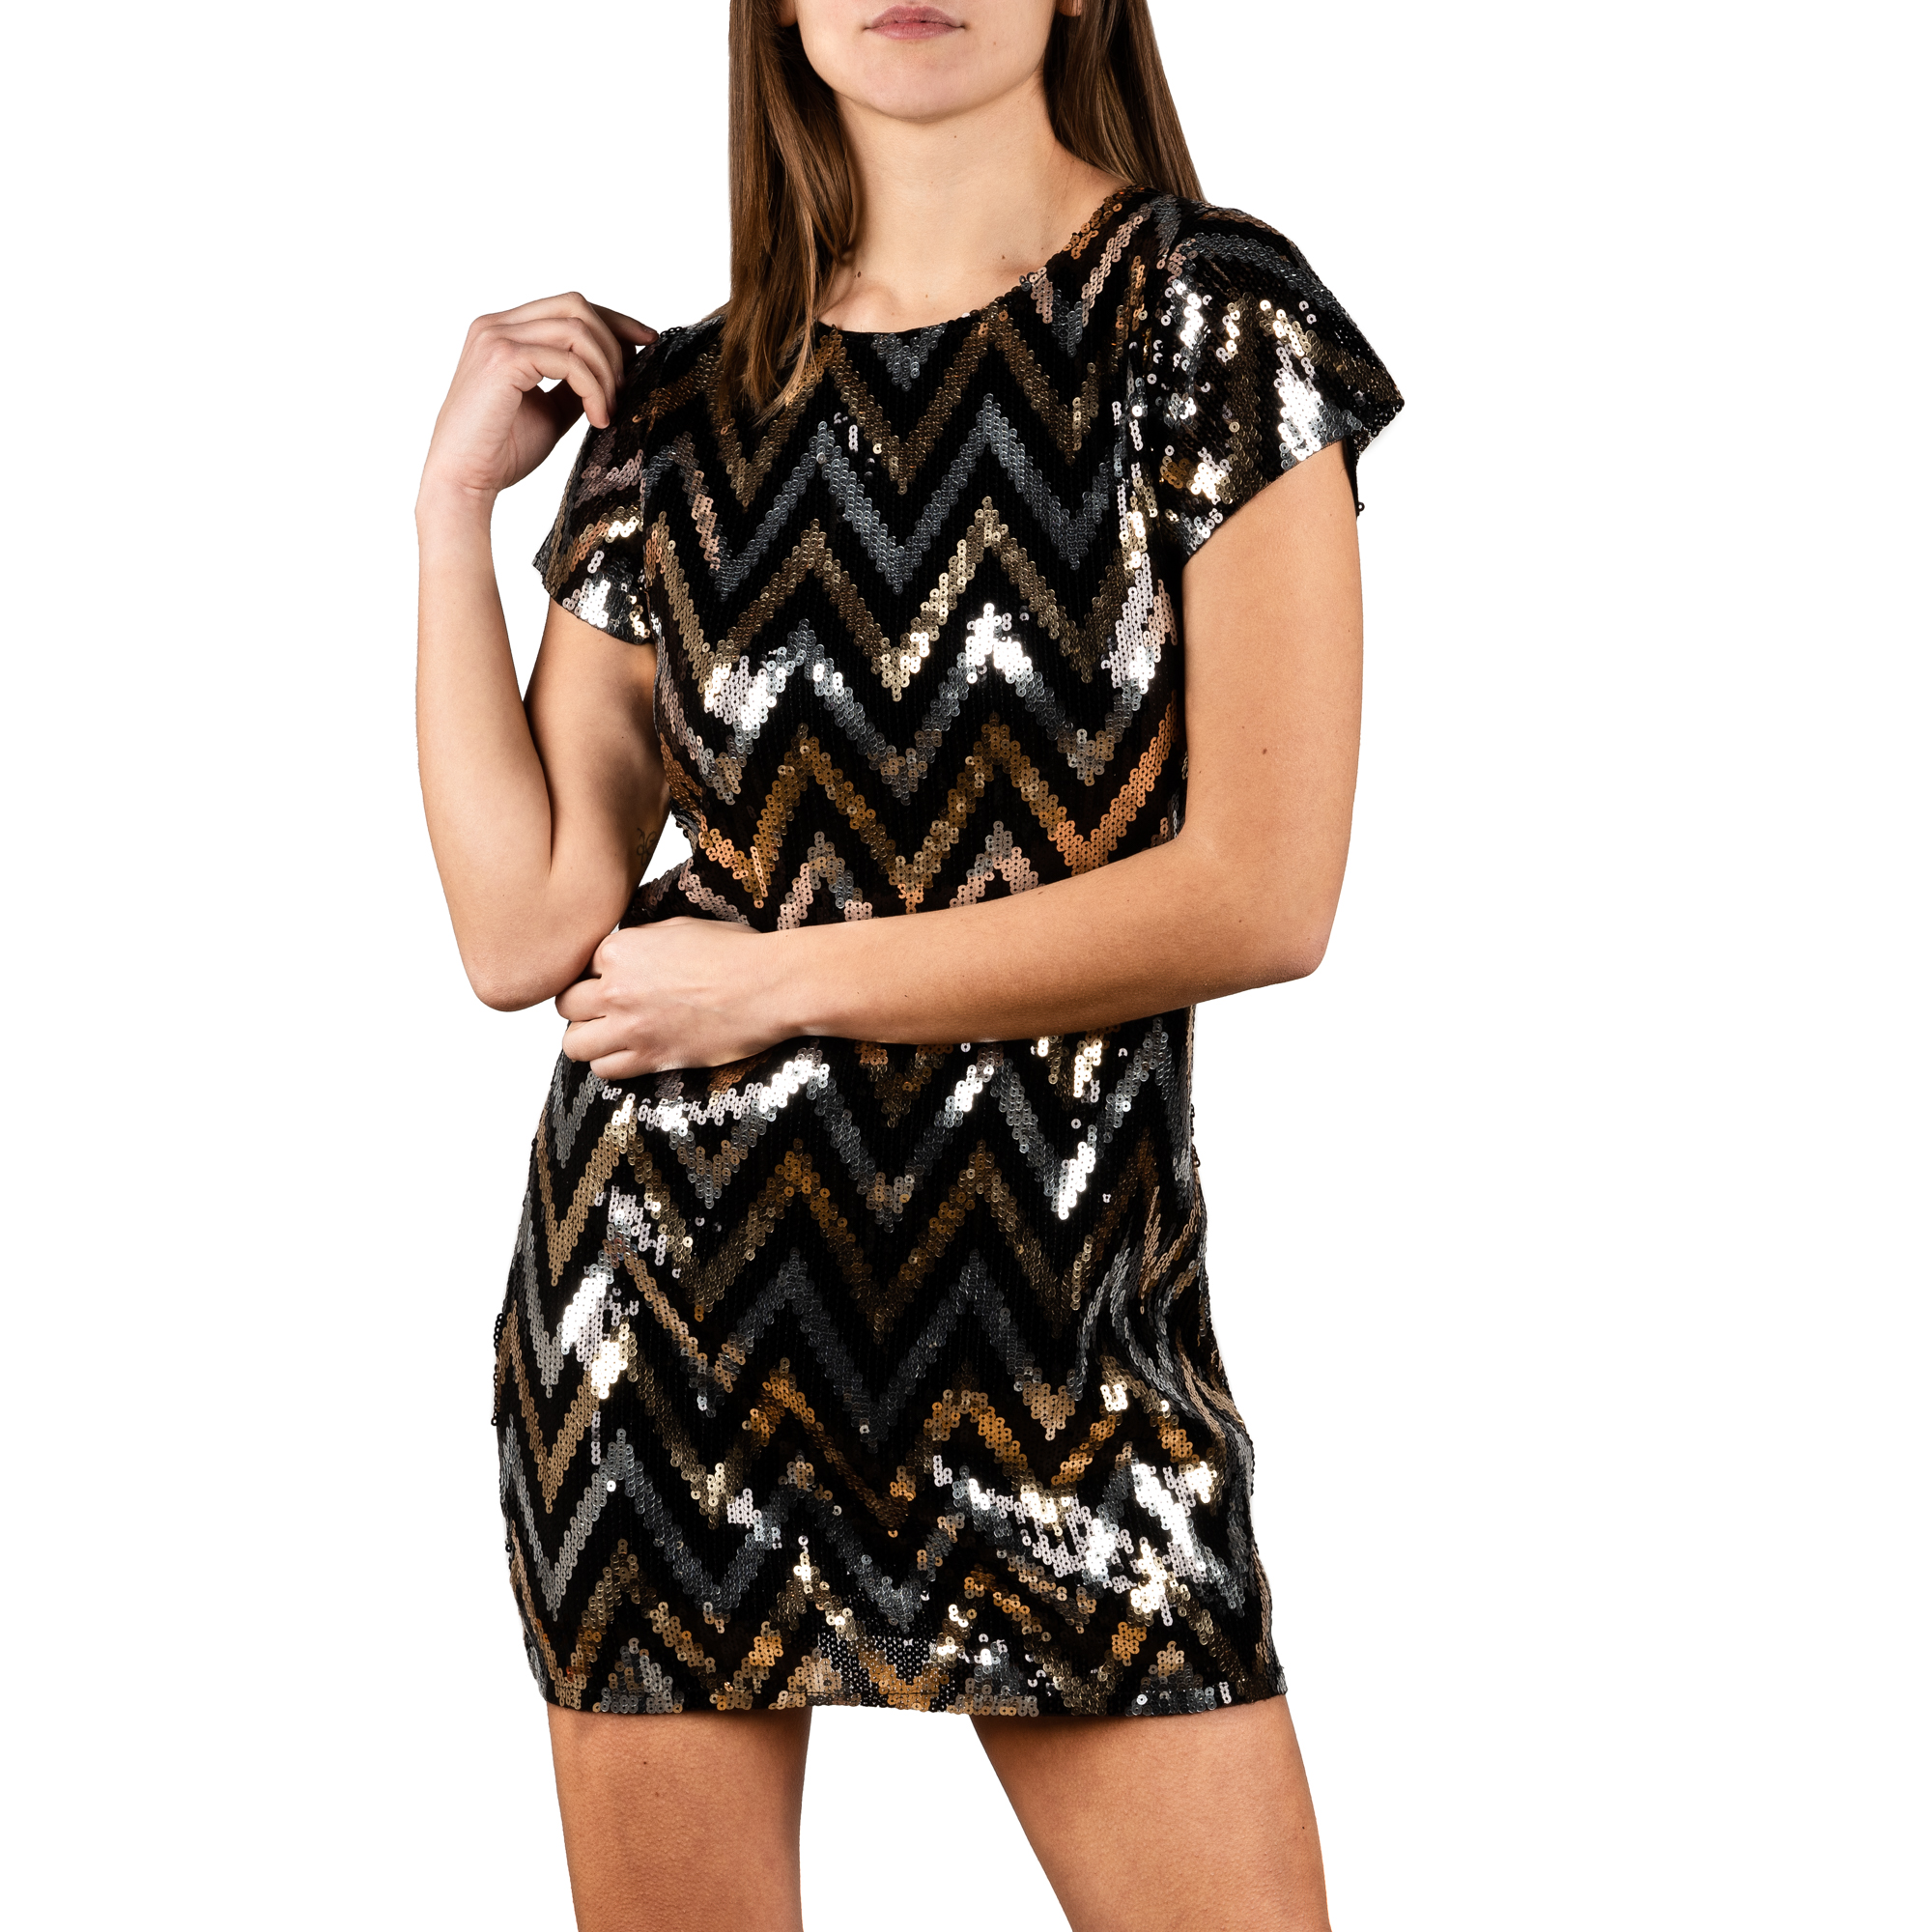 Minidress optical nero/oro con paillettes